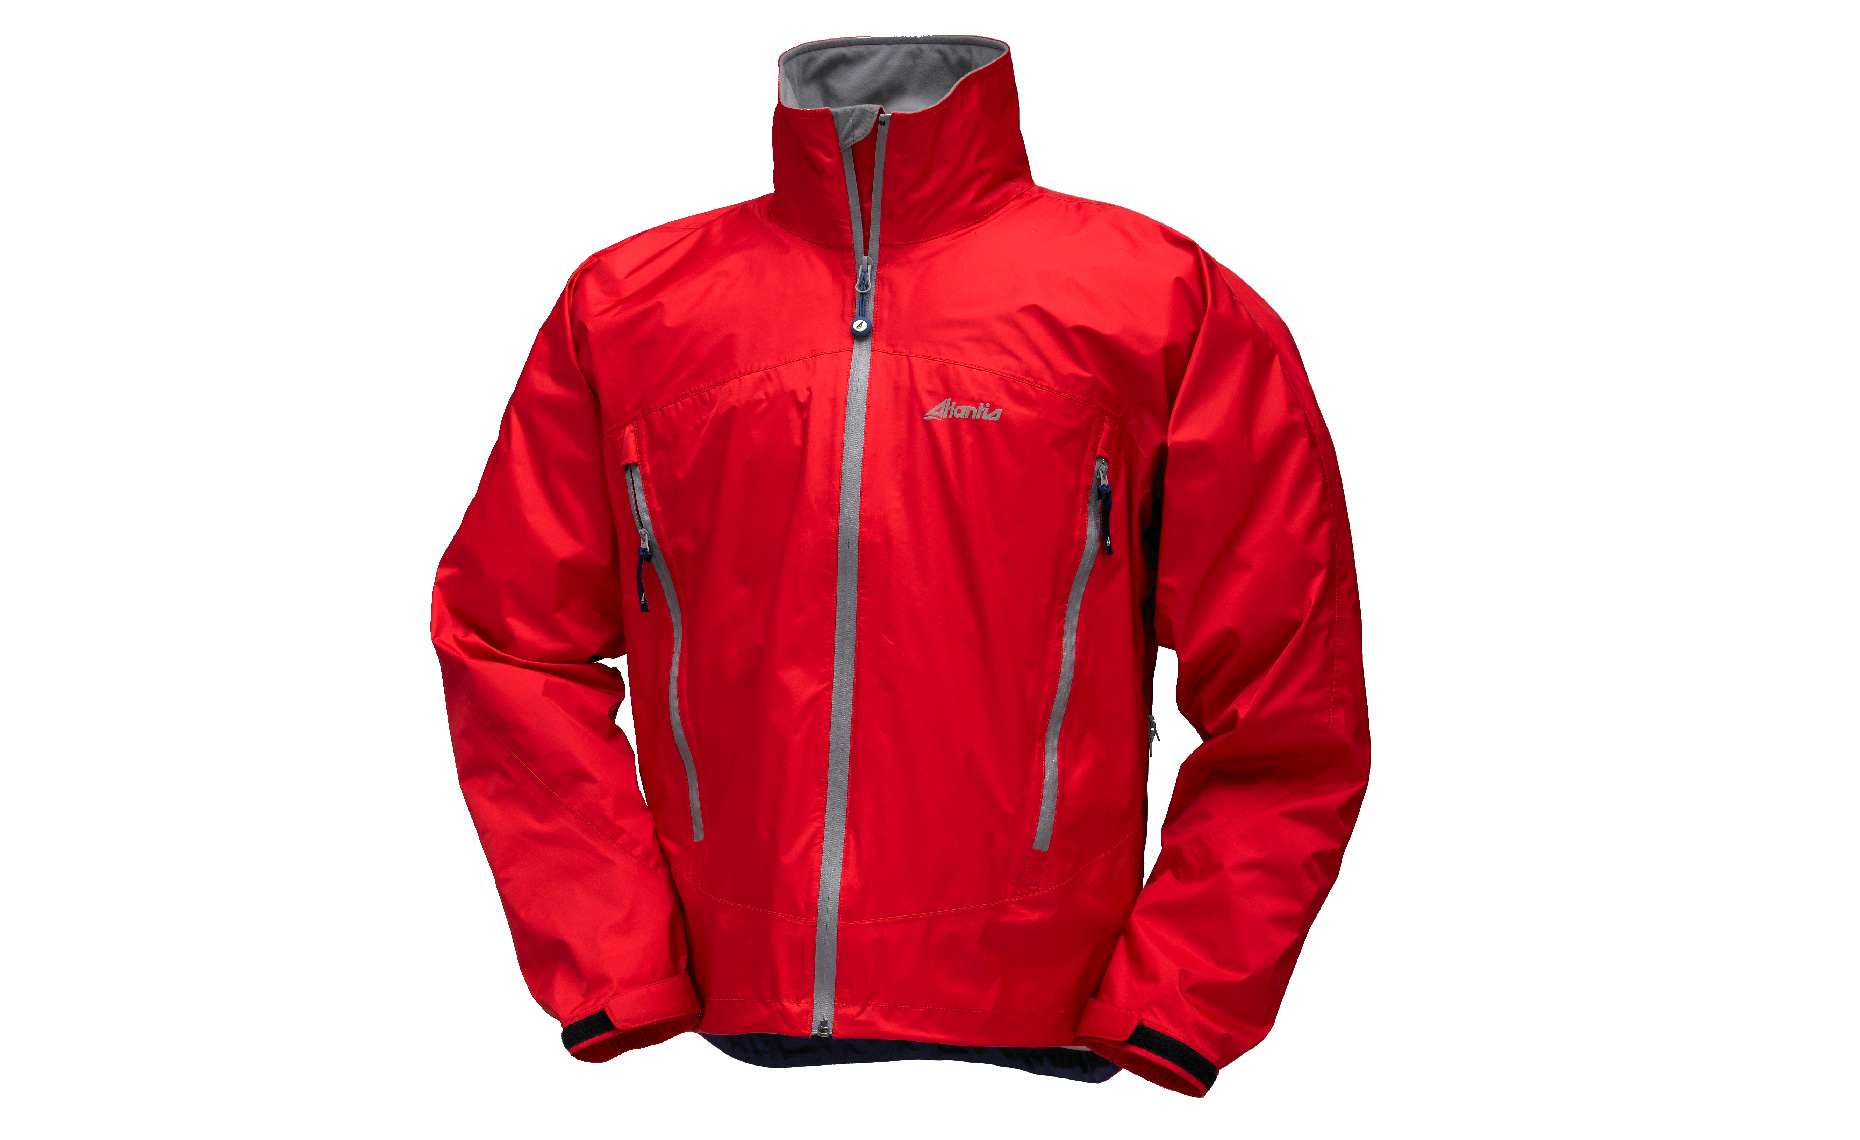 Sailing Jacket Product Microburst-Red-silhouette-F-